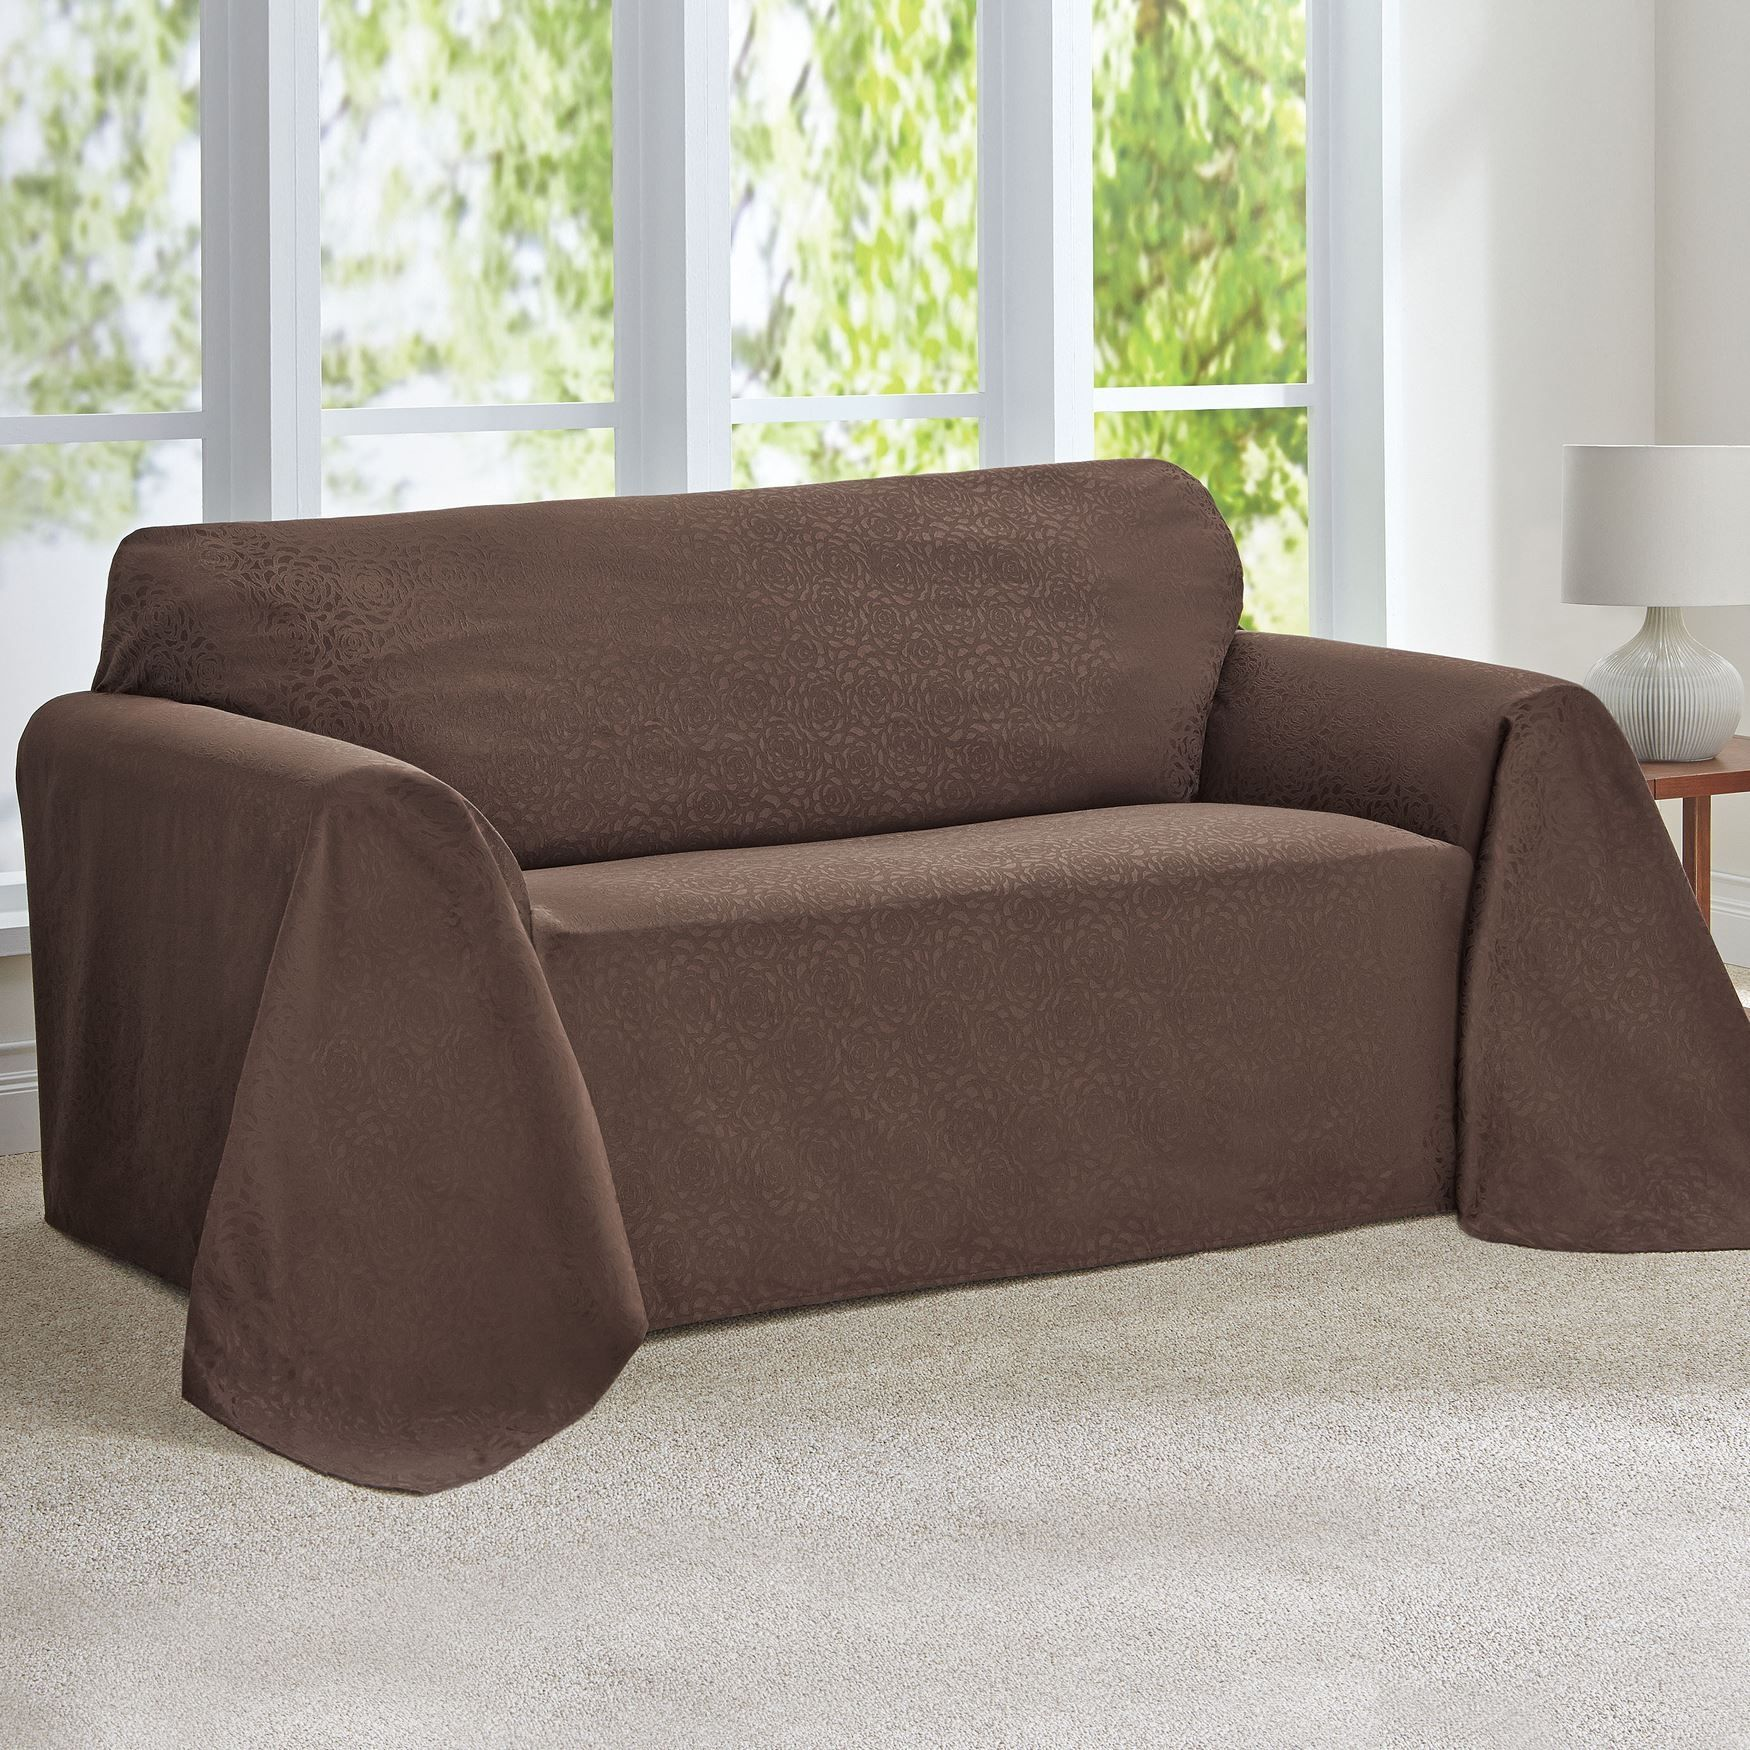 Faux Leather Couch Covers Couch & Sofa Gallery